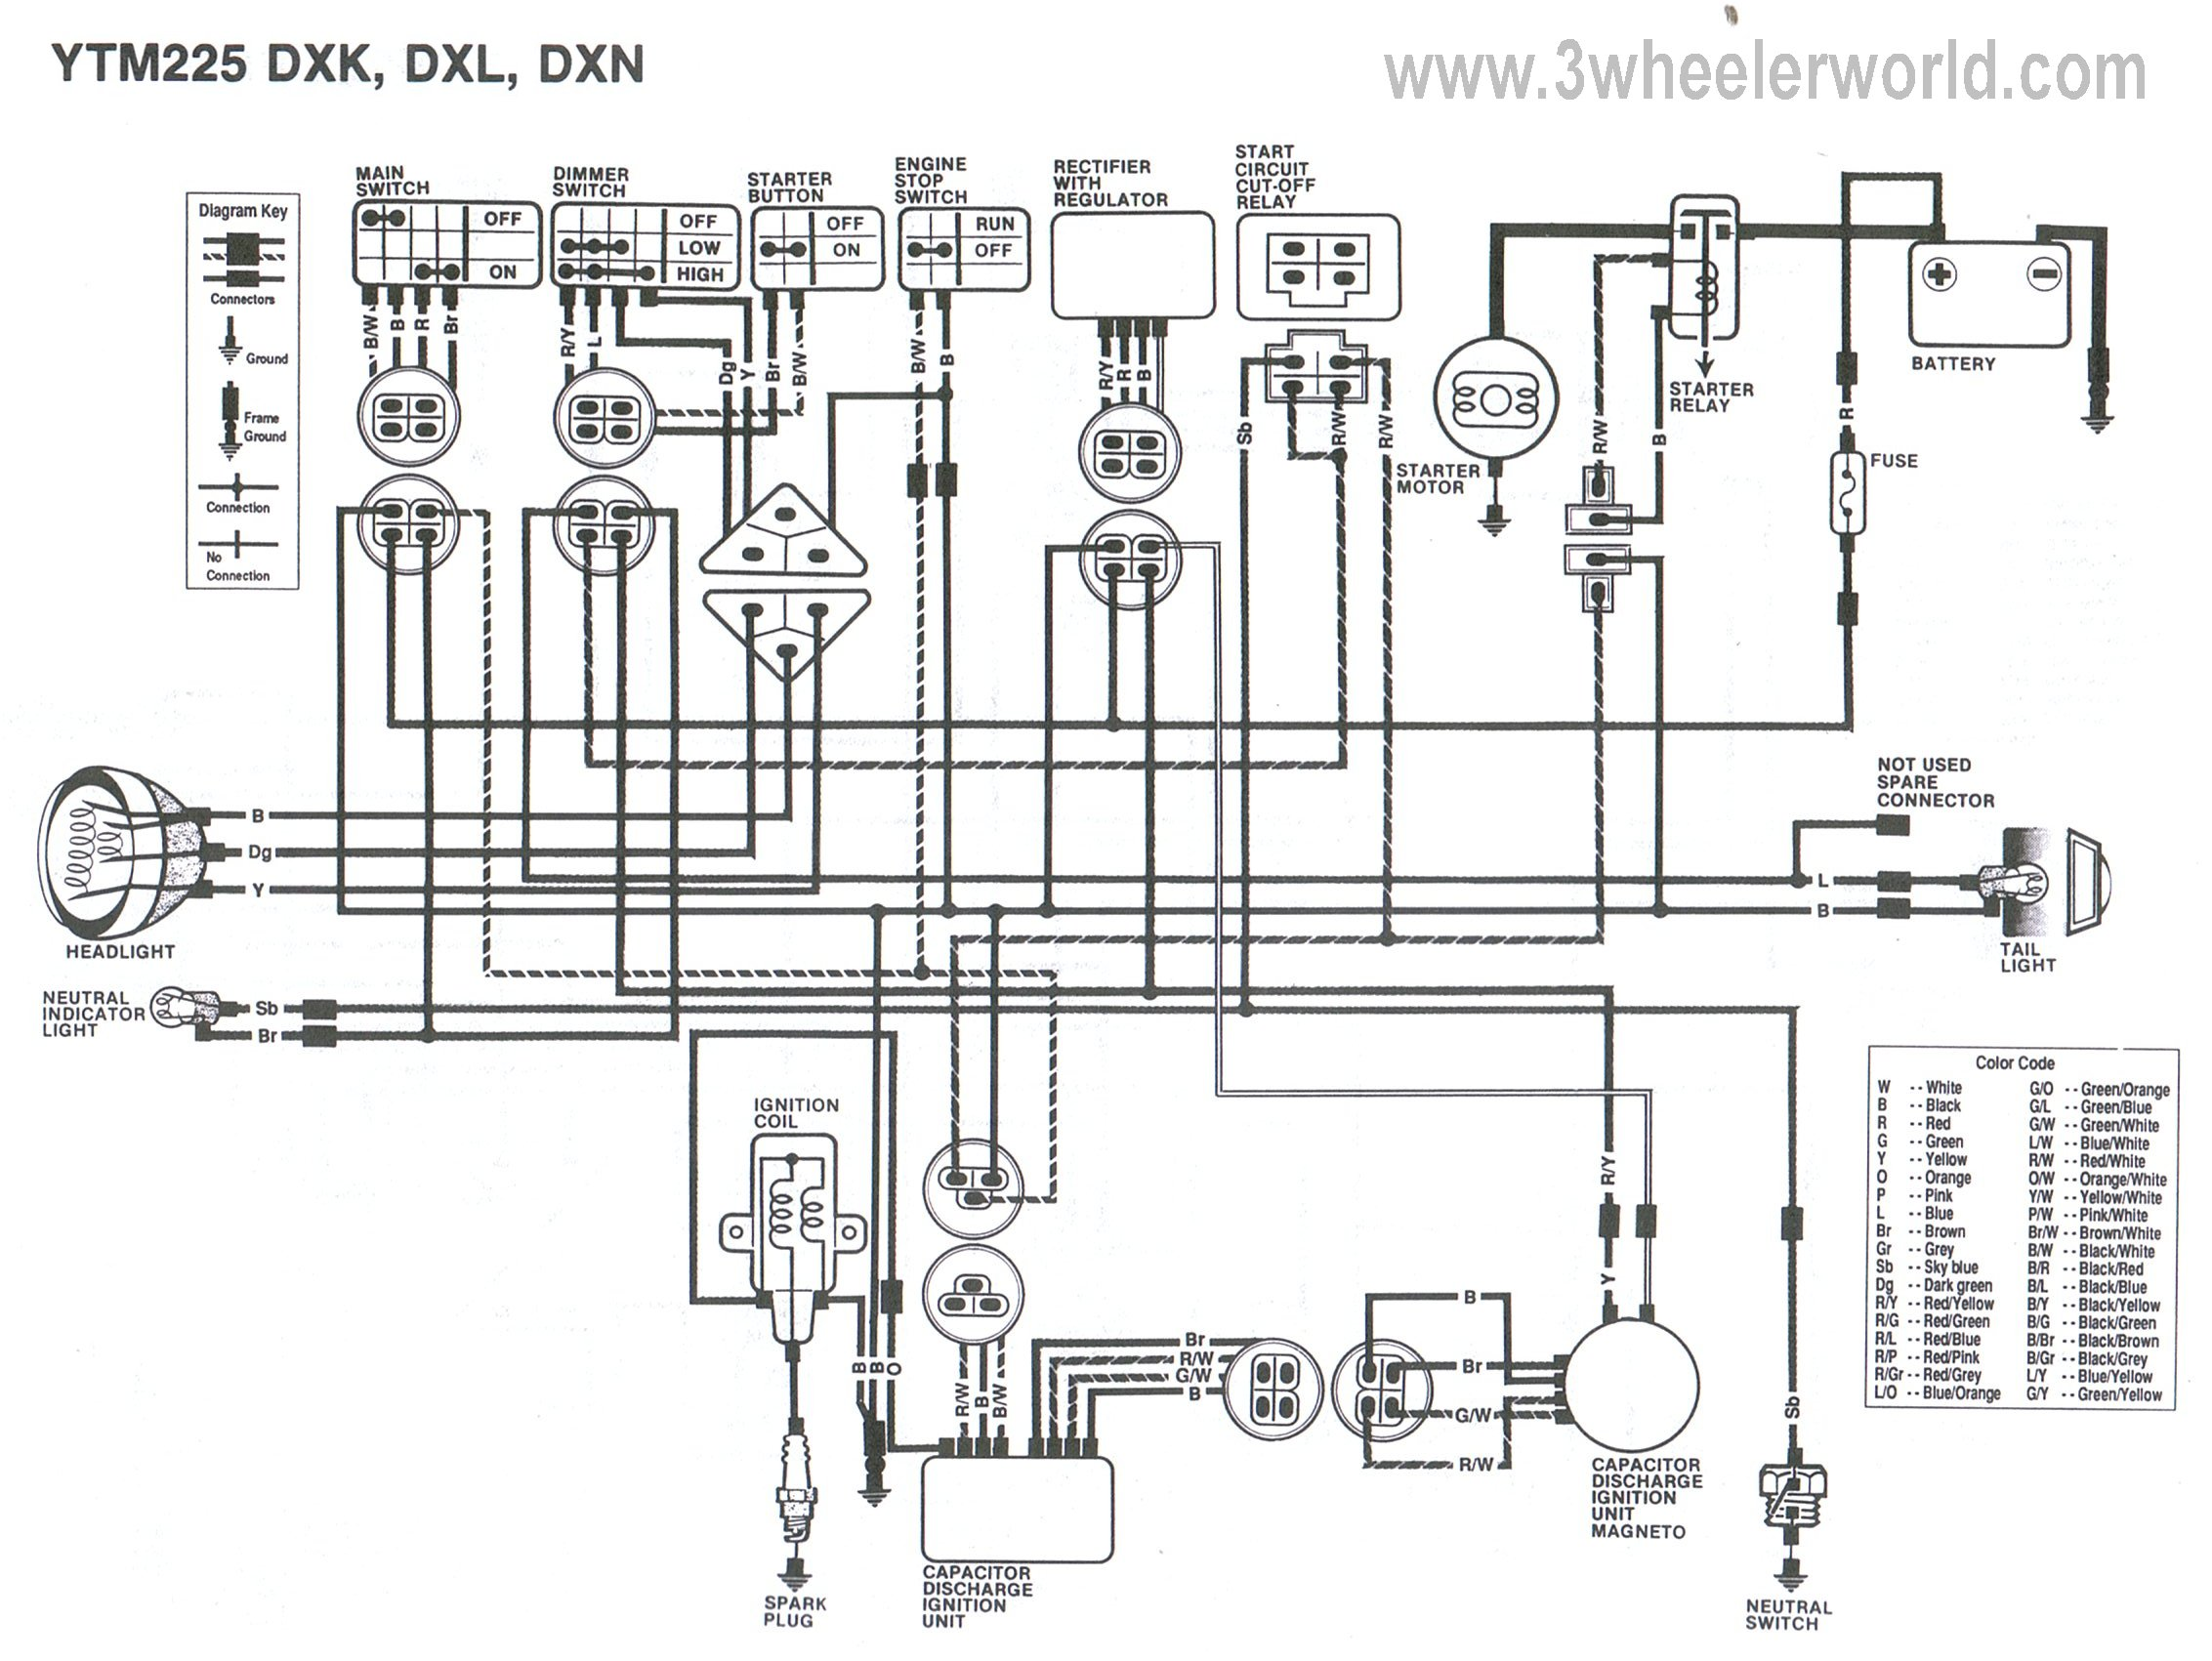 YTM225DXKDXLDXN 3 wheeler world tech help yamaha wiring diagrams yamaha moto 4 250 wiring diagrams at mr168.co